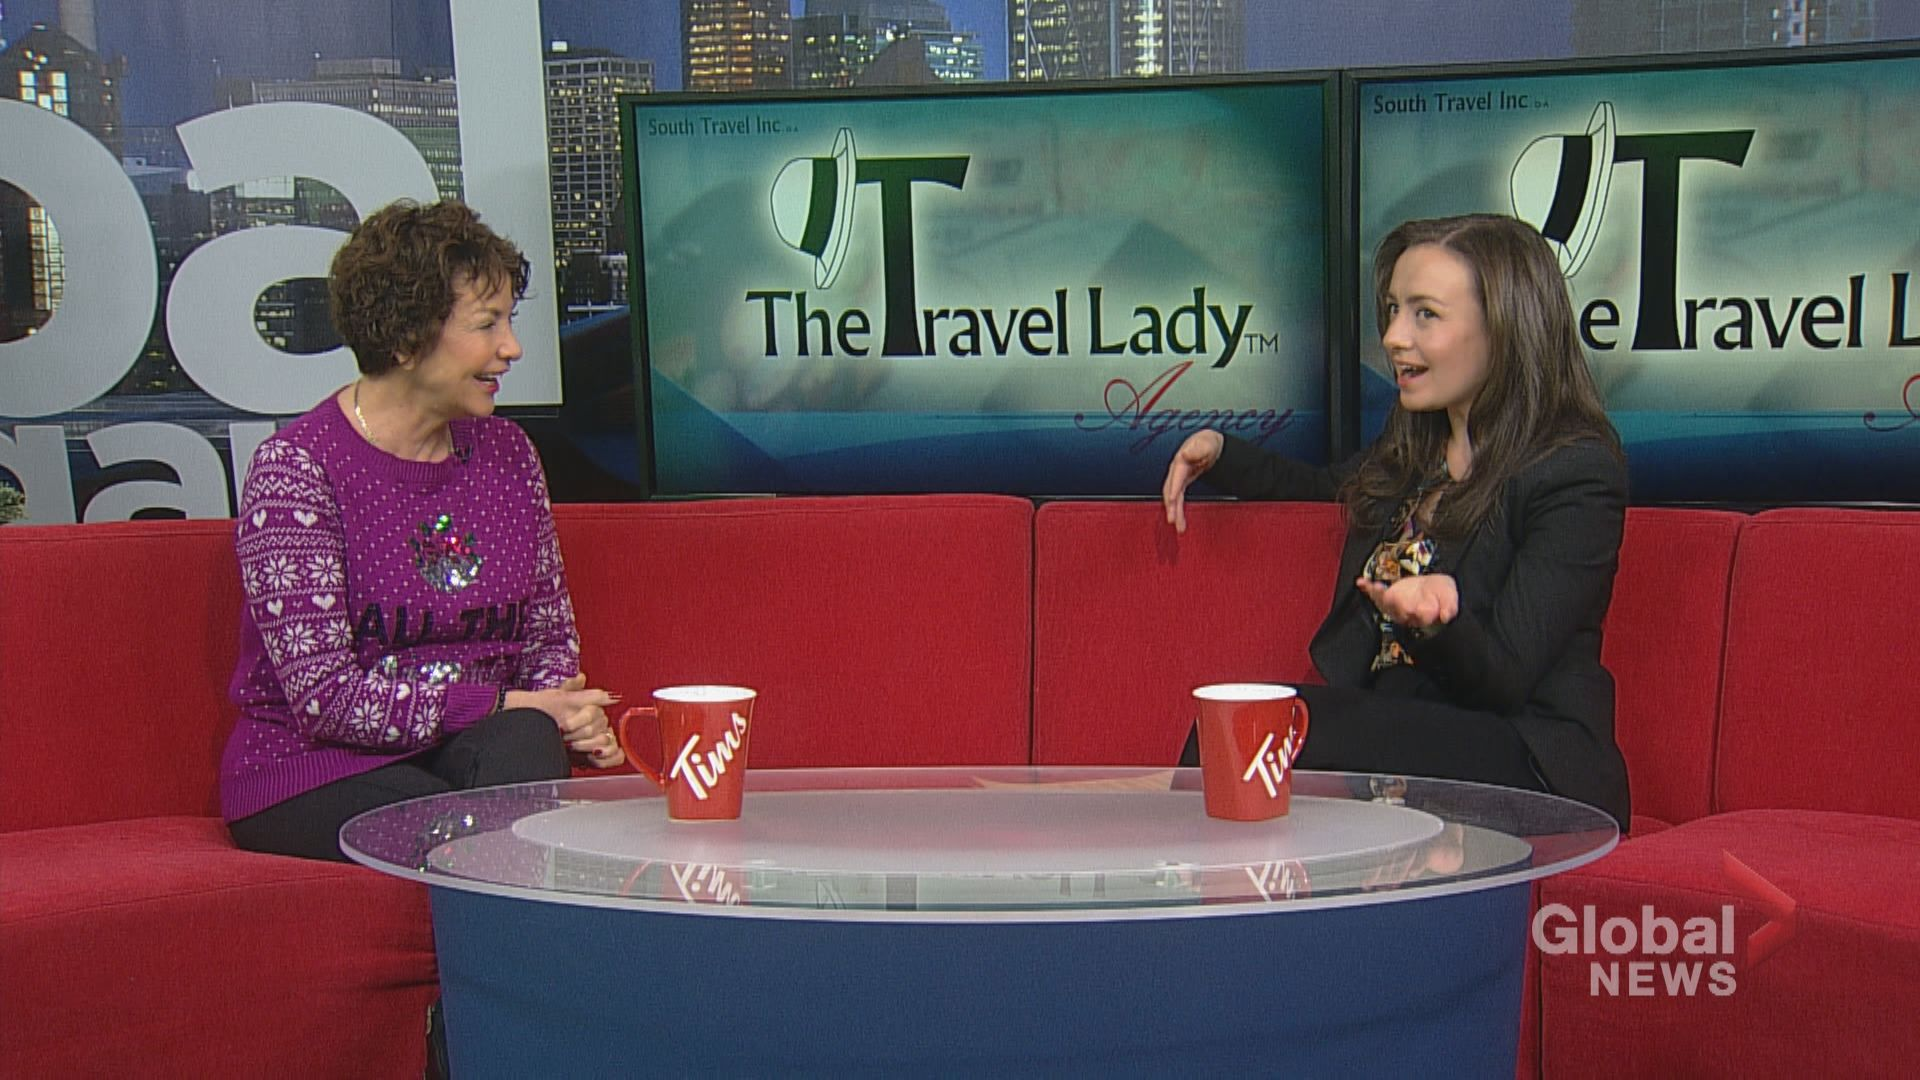 The Travel Lady: Safari adventure promises fun for both young and old